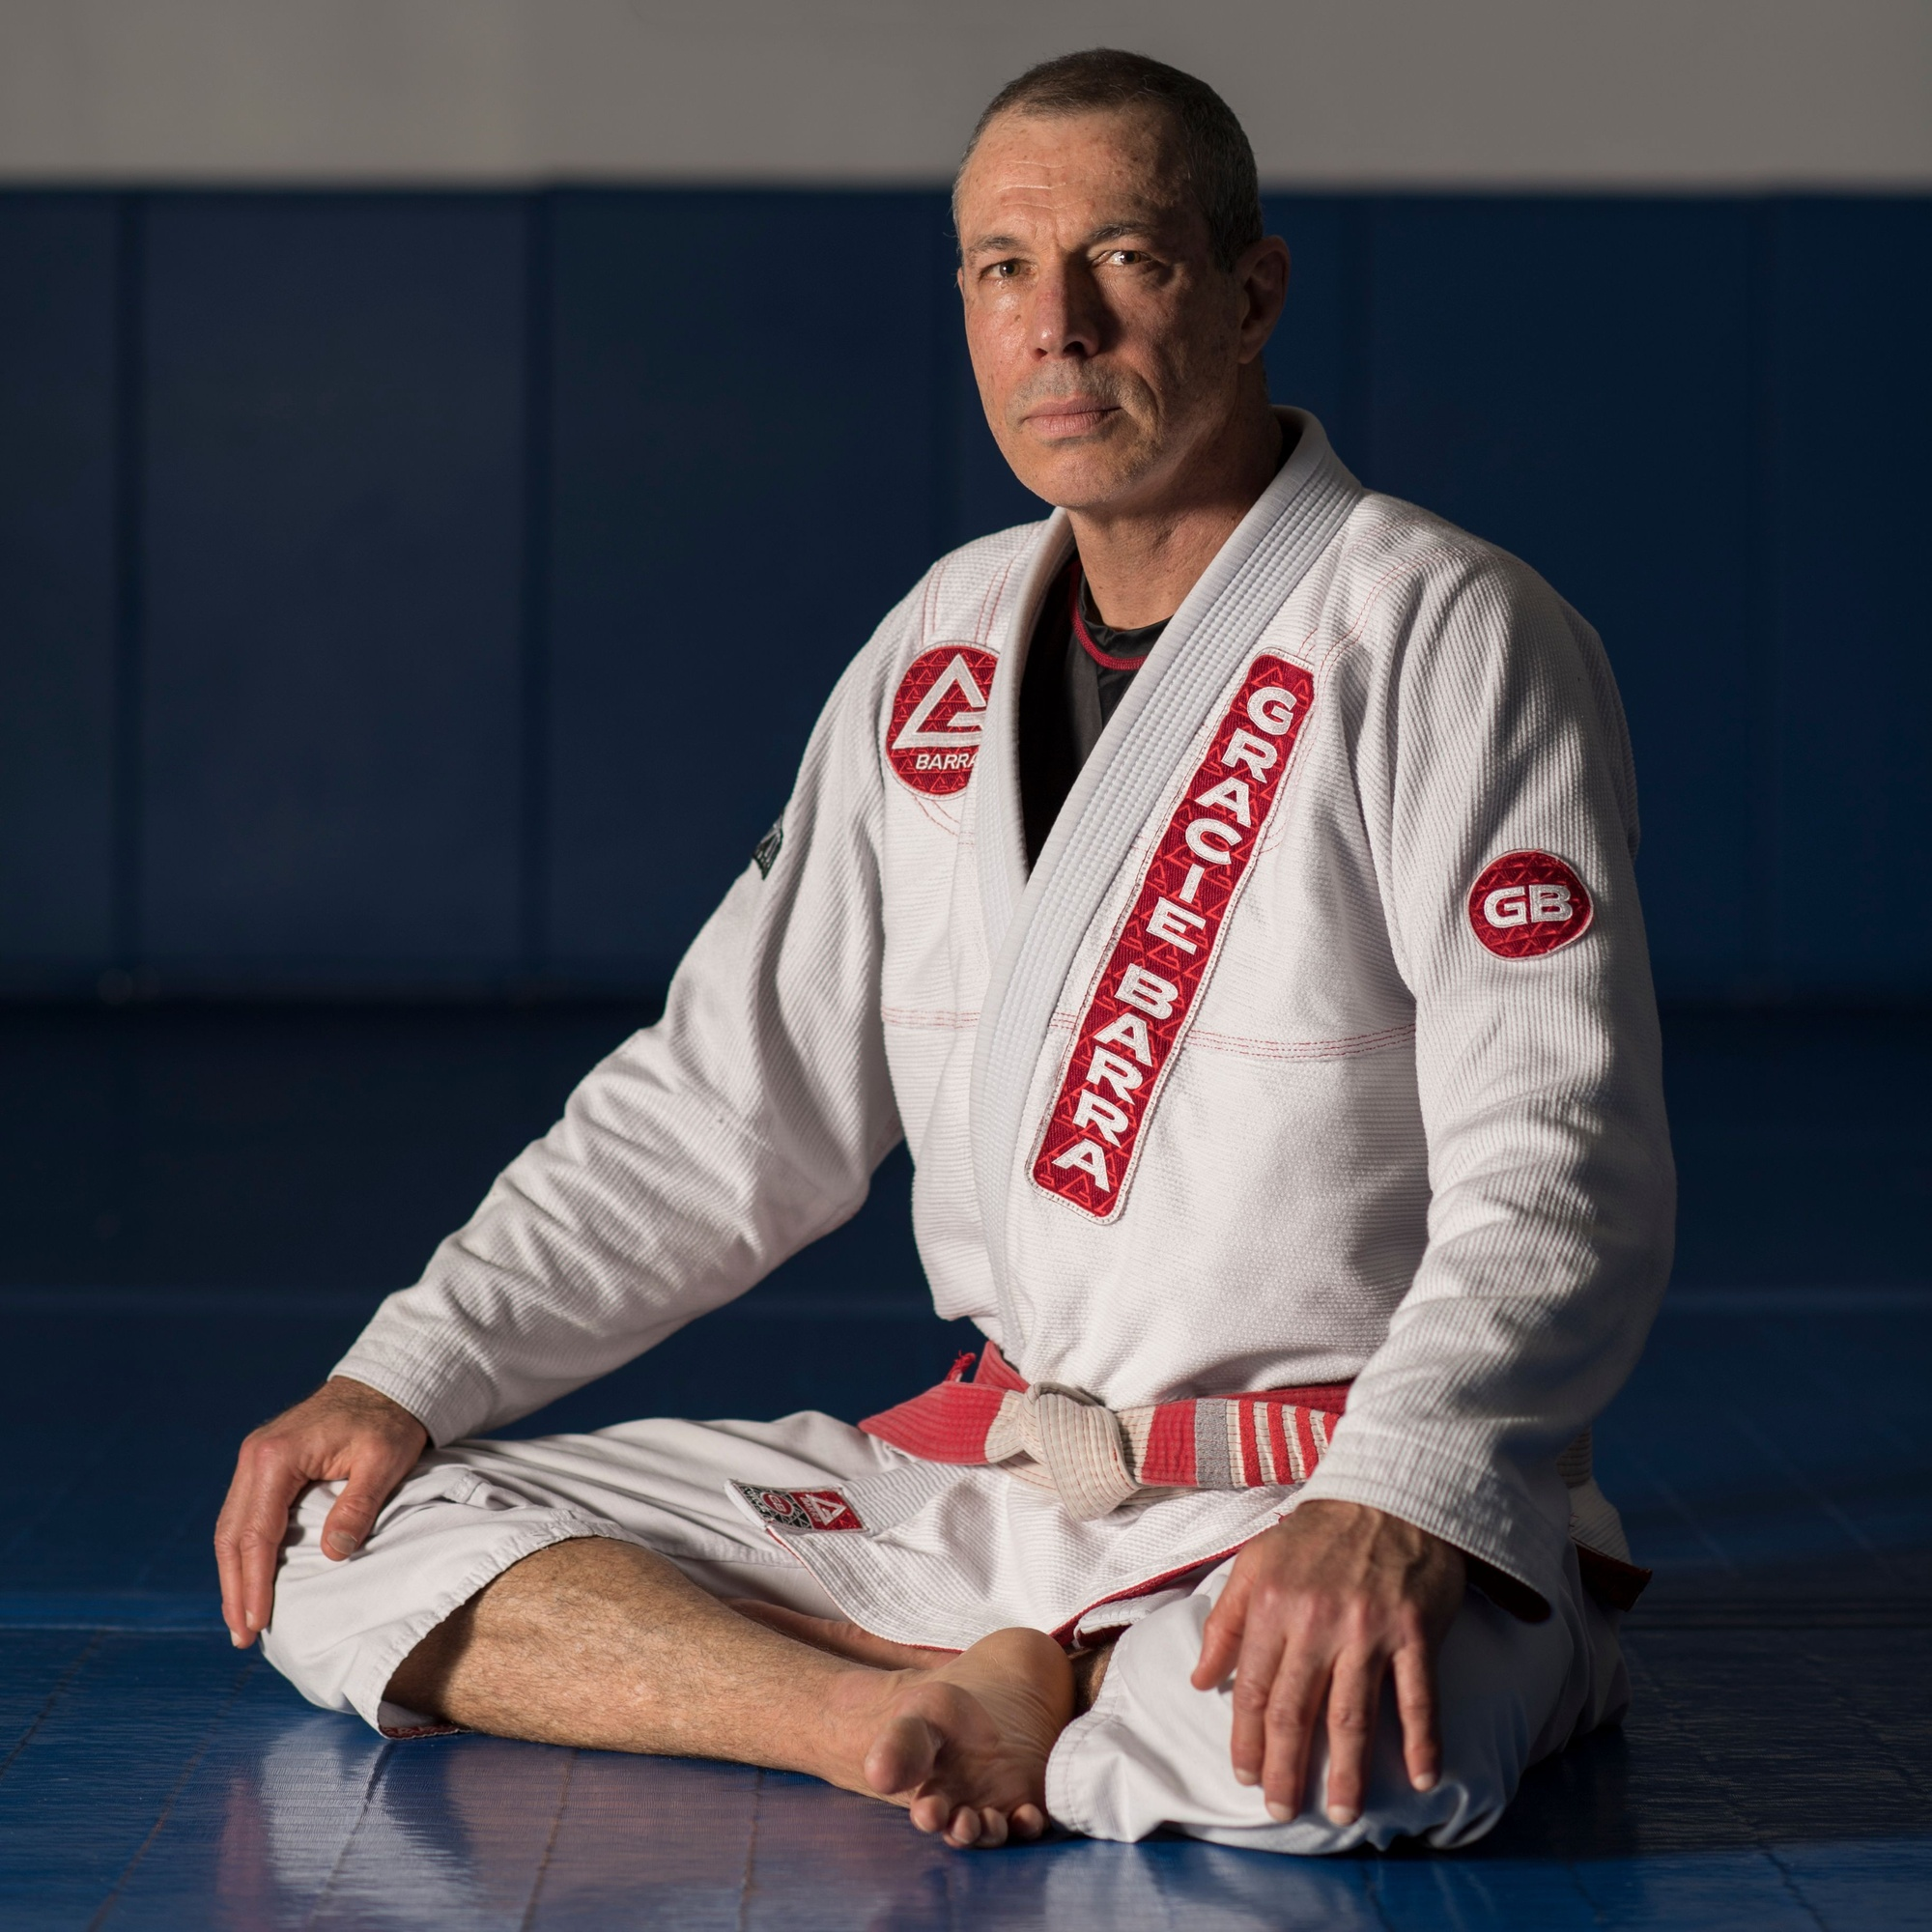 Brazilian Jiu-Jitsu red and white belt 8th degree Carlos Gracie Junior poses for a photo in September of 2016. Son of Carlos Gracie, Carlinhos is the founder of Gracie Barra, Graciemag and IBJJF.